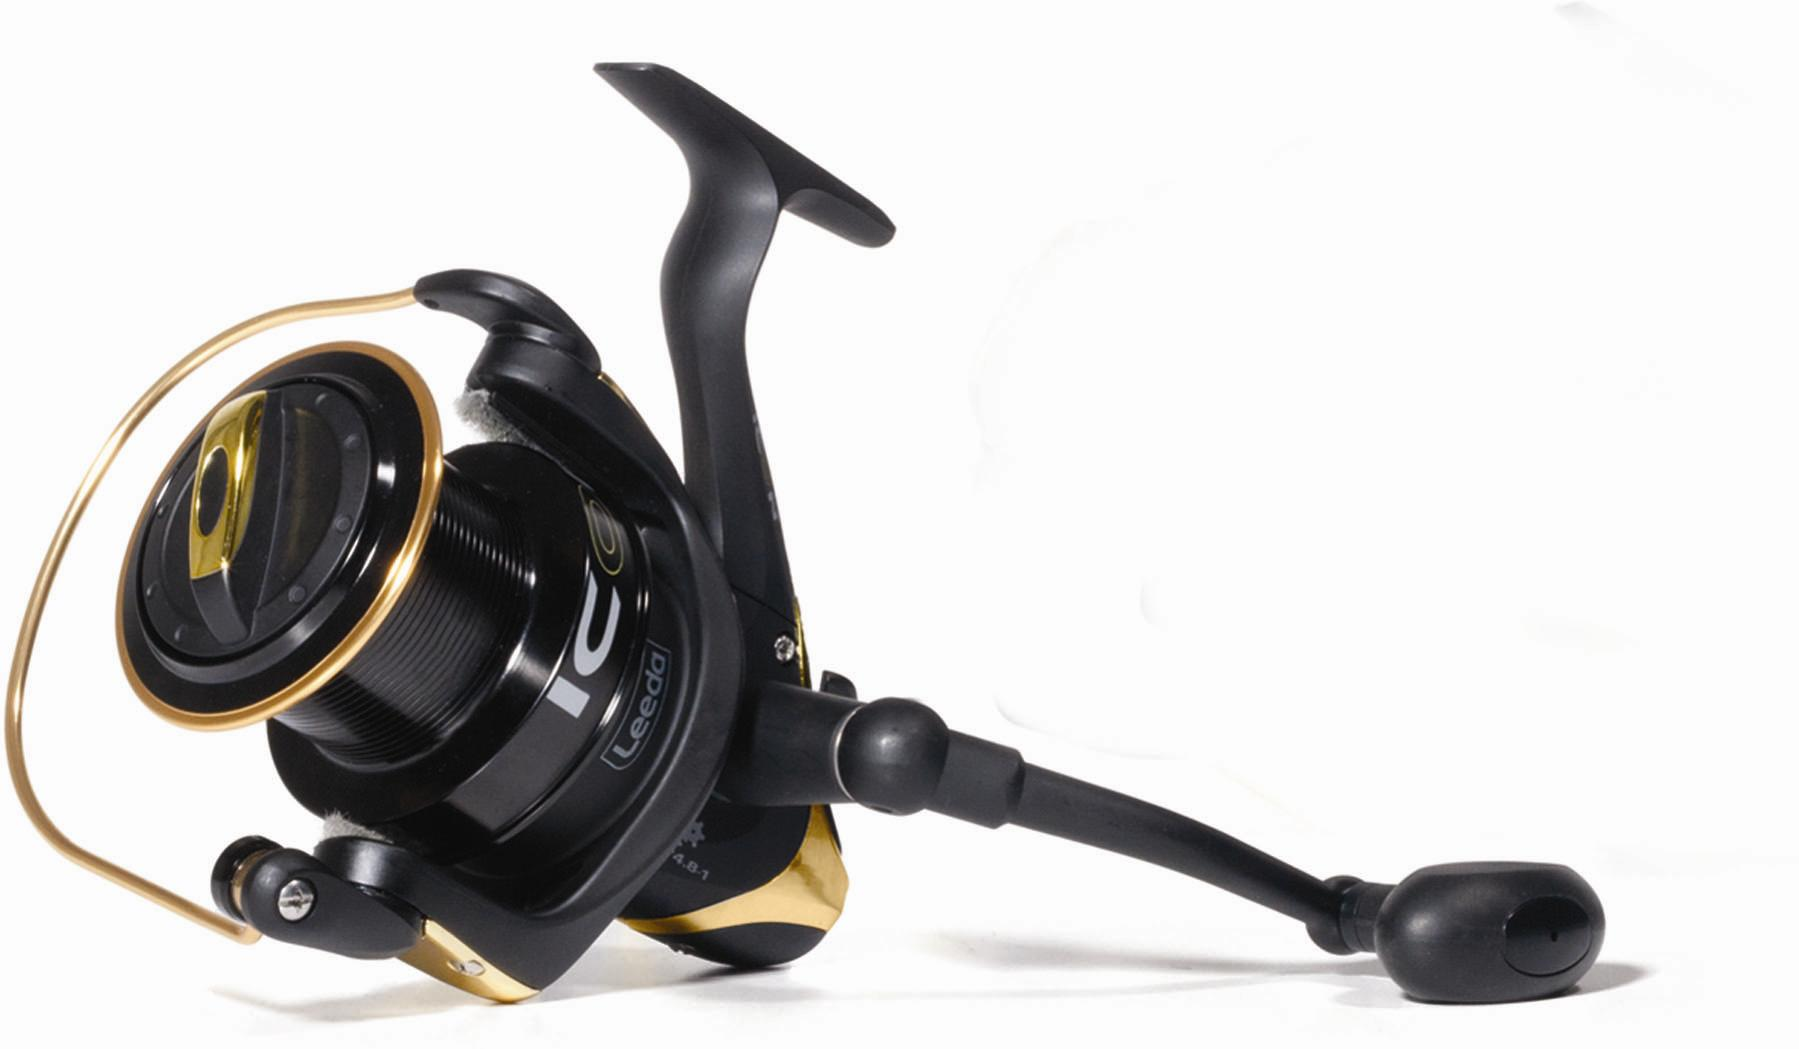 Leeda icon surf fixed spool beach casting sea fishing reel for Surf fishing reel